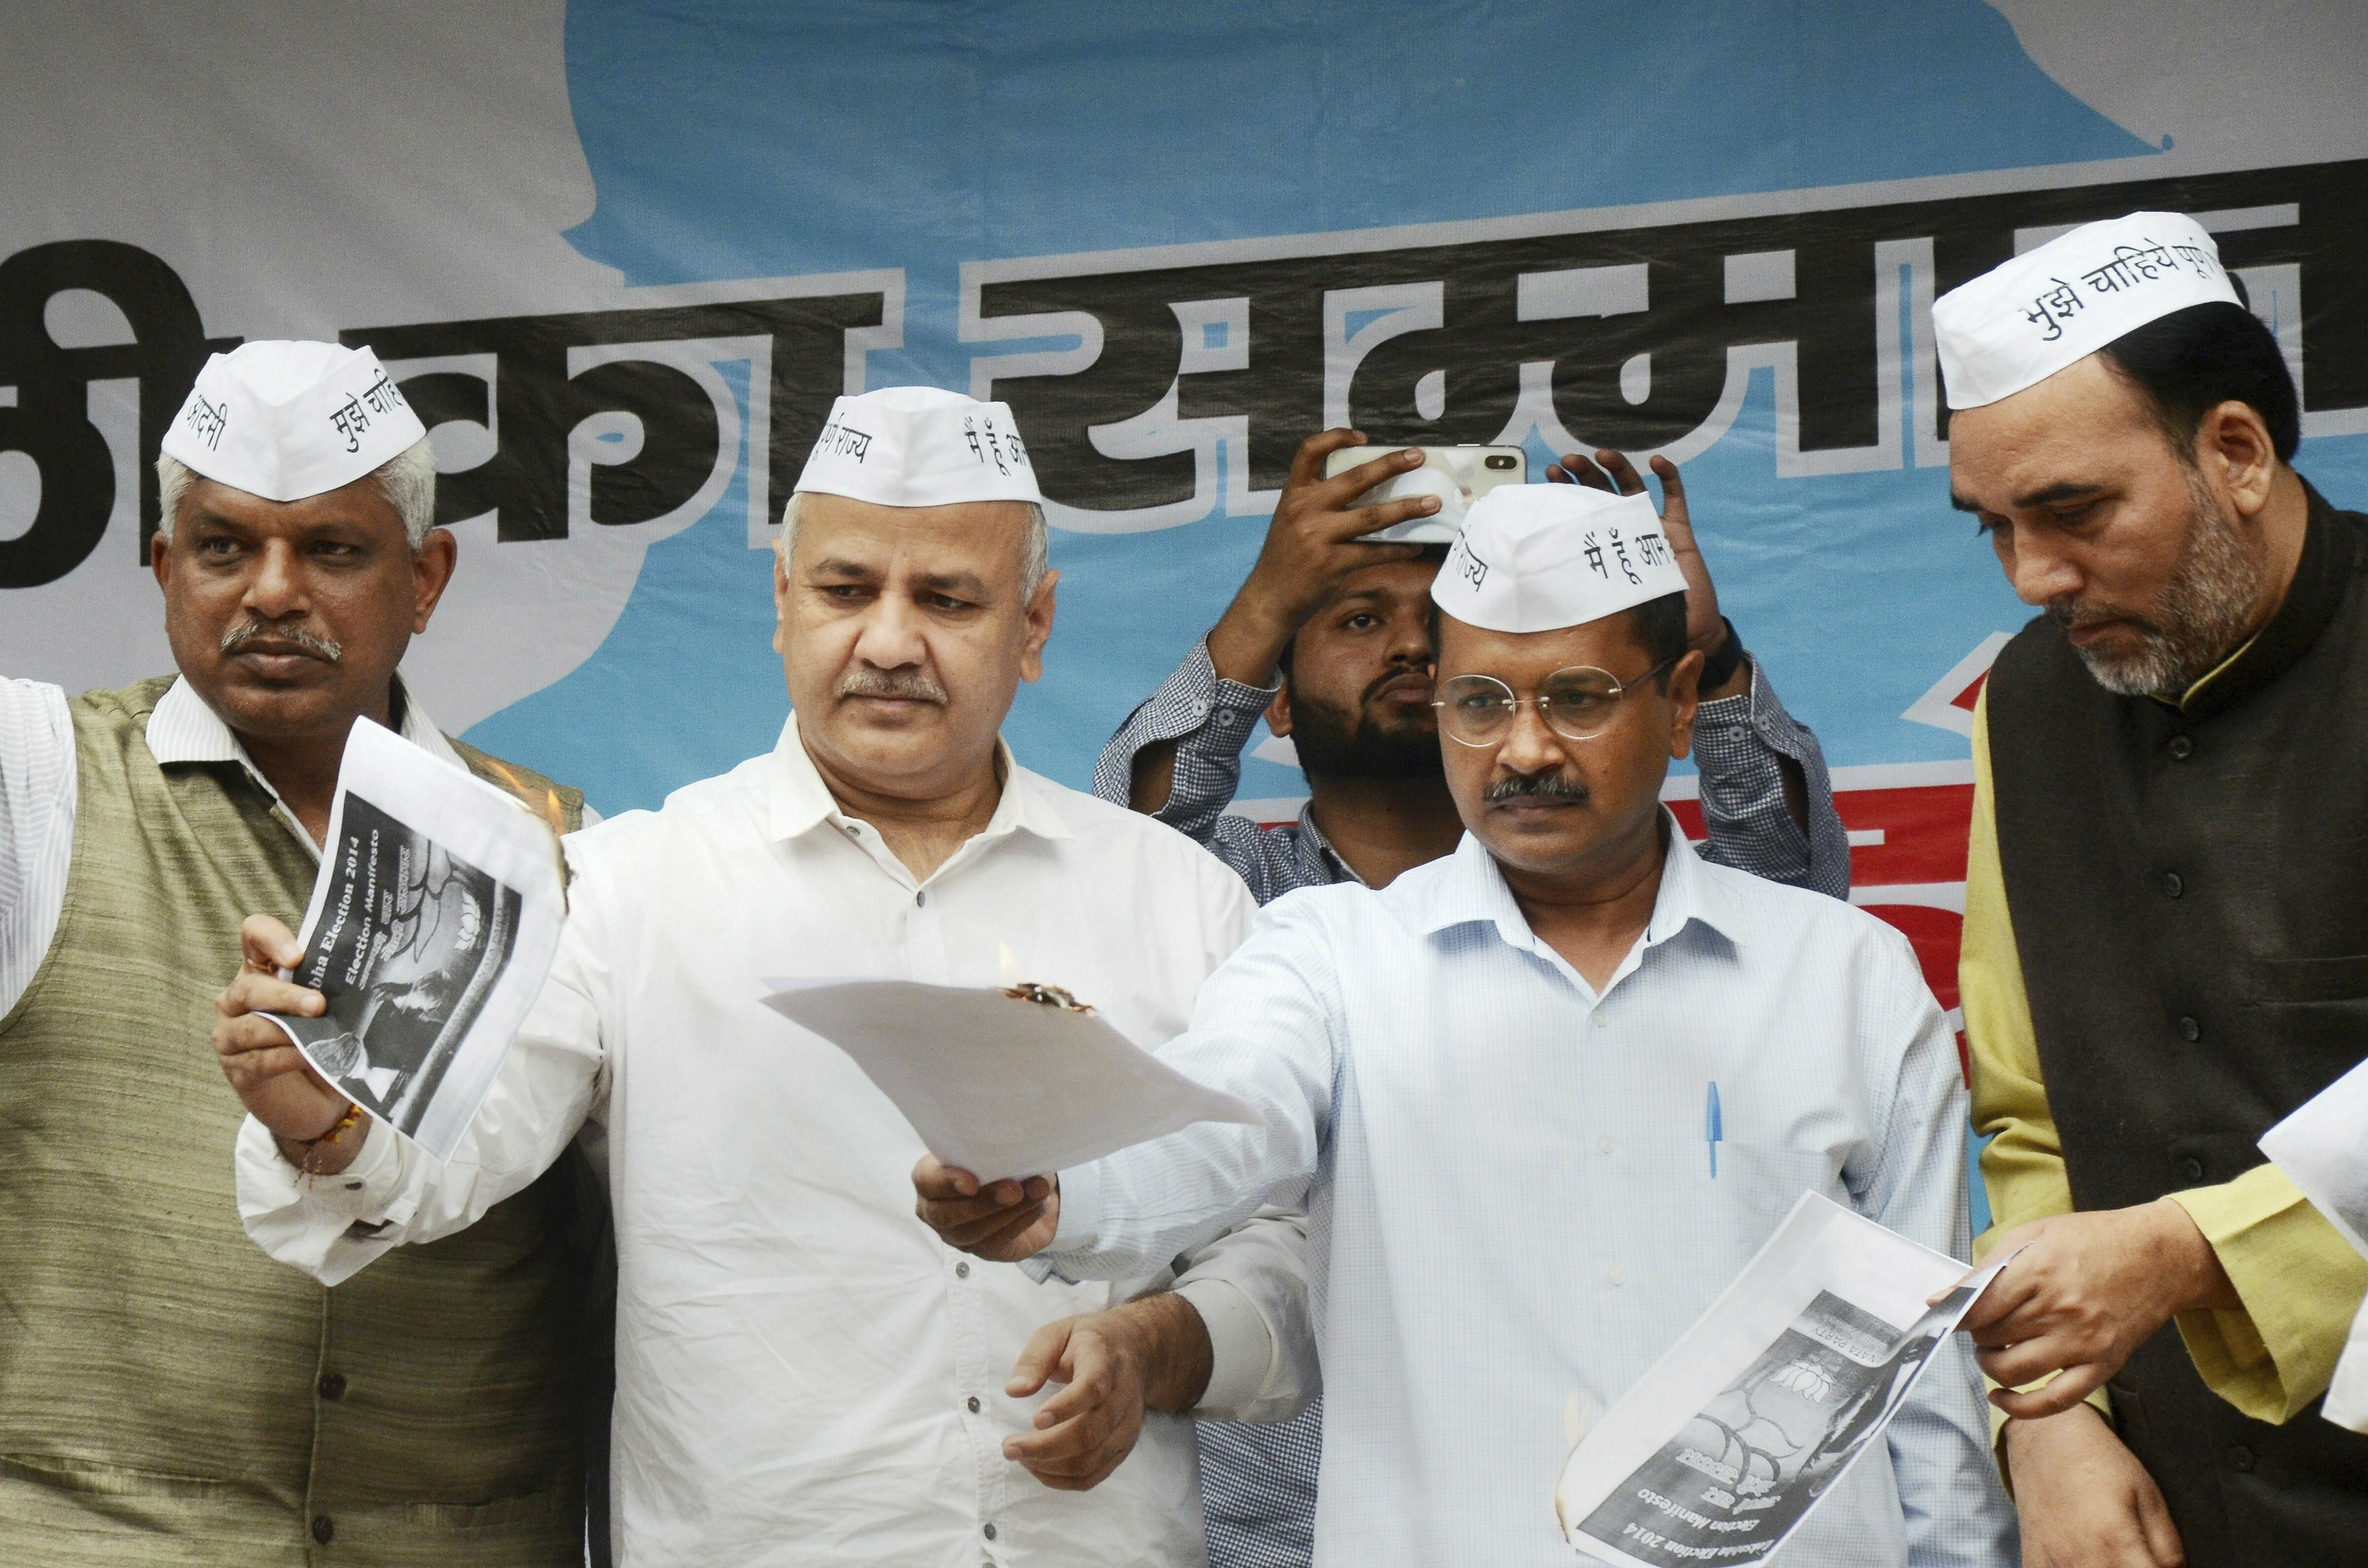 Delhi Chief Minister and AAP convernor Arvind Kejriwal, his deputy Manish Sisodia and other party leaders burn BJP 2014 manifesto in relation to providing full statehood to Delhi - PTI